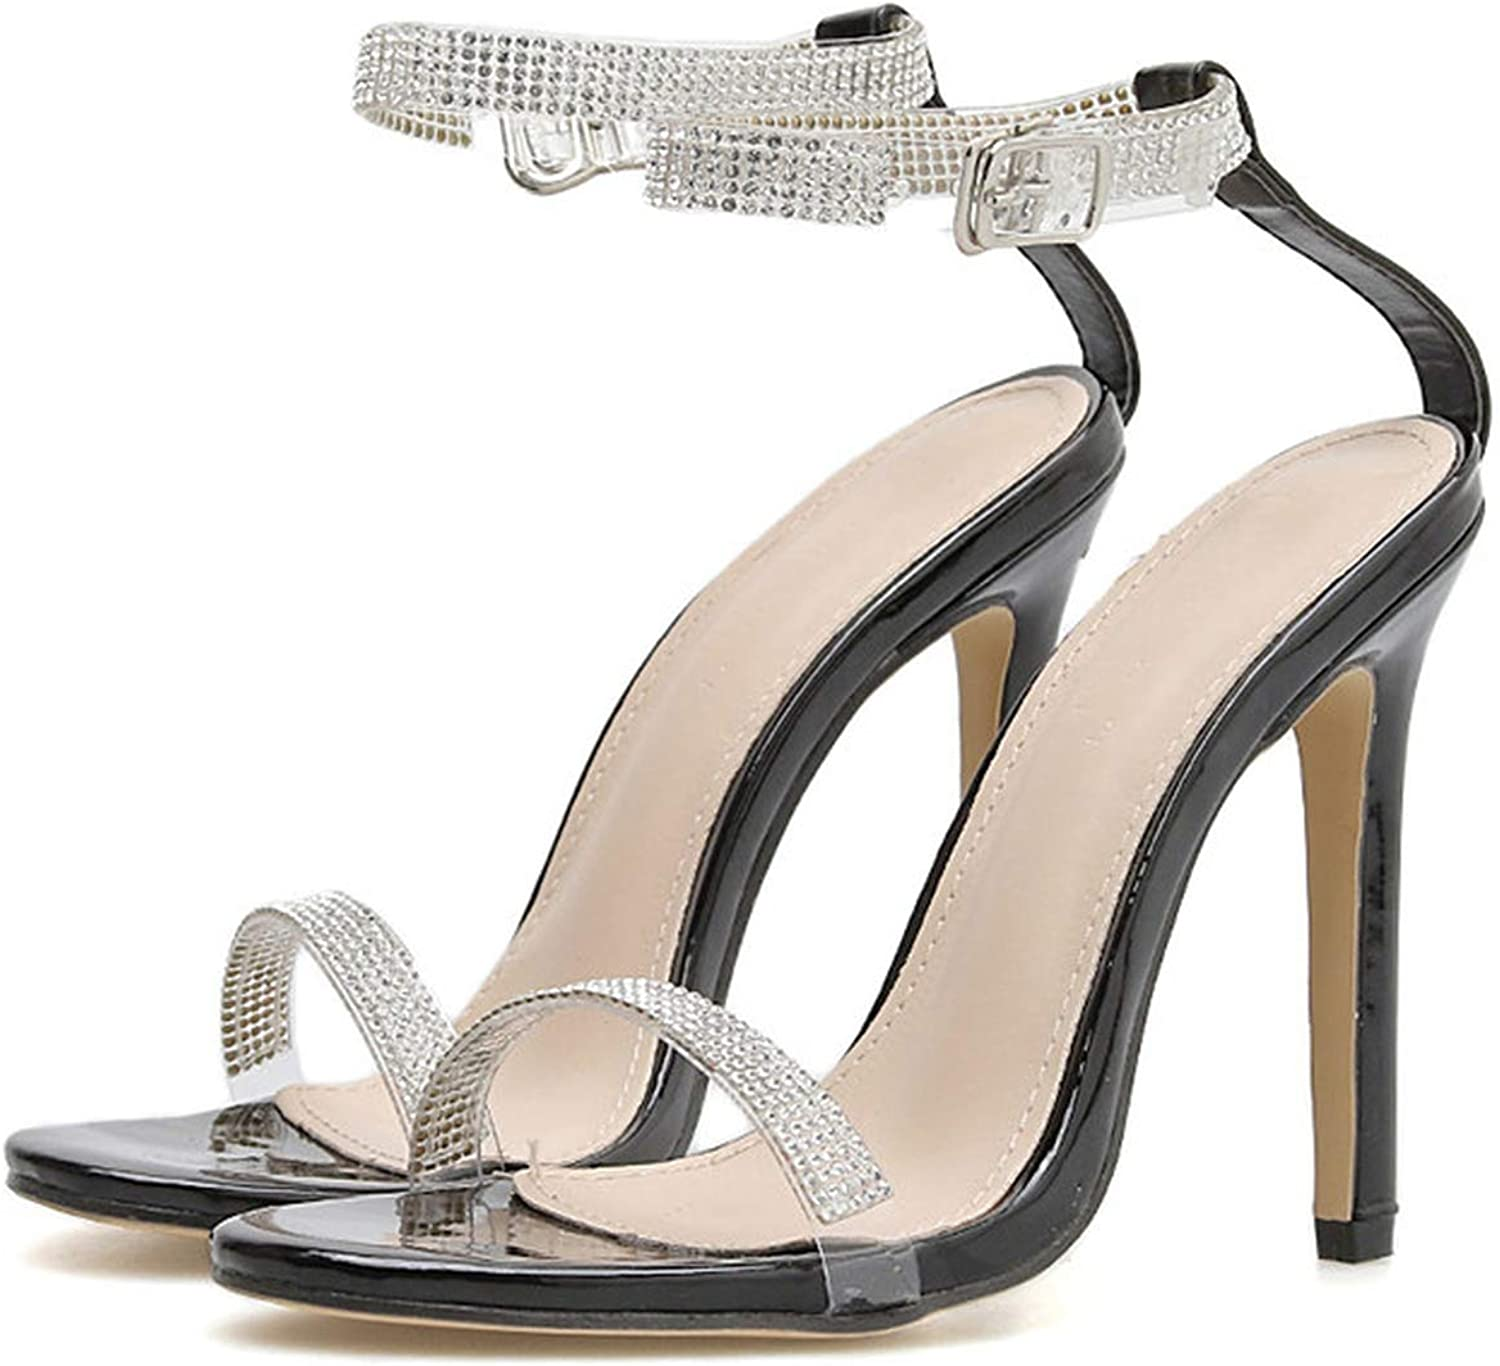 Concise Crystal Thin high Heels Gladiator Sandals Sexy Ankle Strap Pumps Sandals